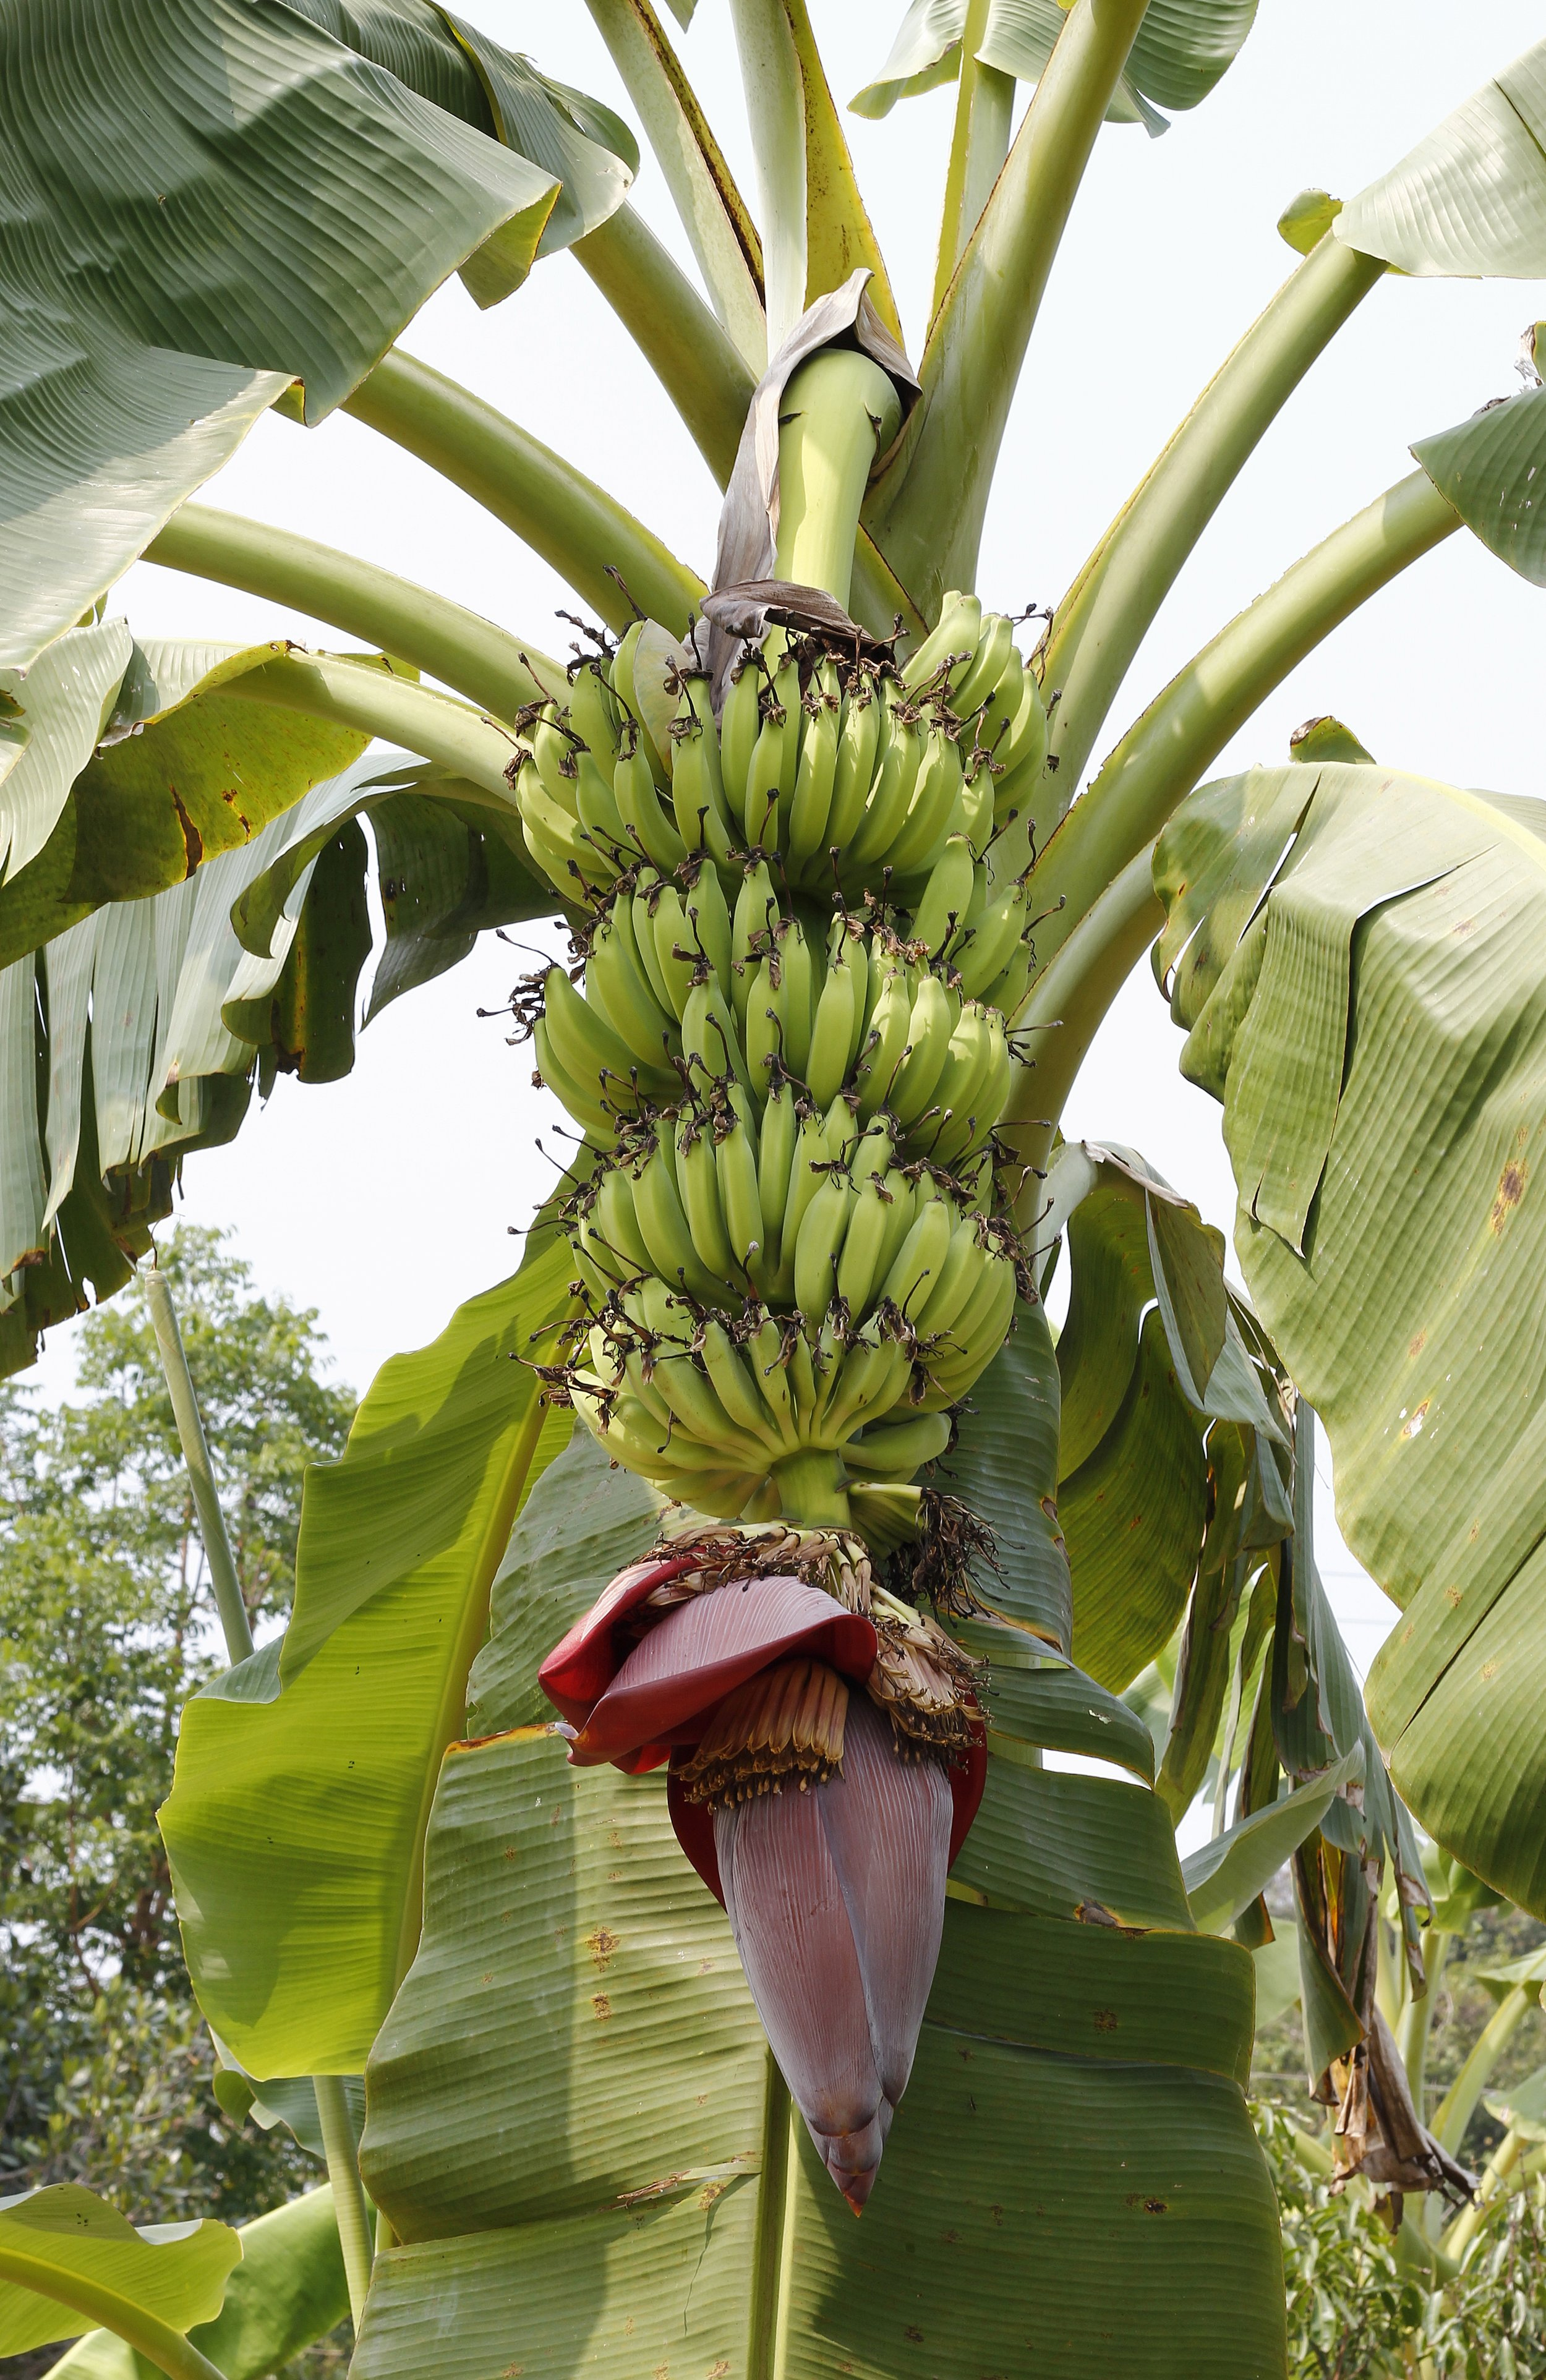 About the Plantain  - According to Fruit and Veggies - More Matters -- a health inititative spearheaded by the Produce for Better Health Foundation in conjunction with the Center for Disease Control & Prevention (CDC) -- the plantain is actually. . . a fruit!Similar to the tomato, which is a fruit consumed as a vegetable, the plantain is also consumed as a vegetable.The plantain (Musa paradisiaca) is a tall plant which can grow from 10 to 33 feet high. It has a cone-shaped false